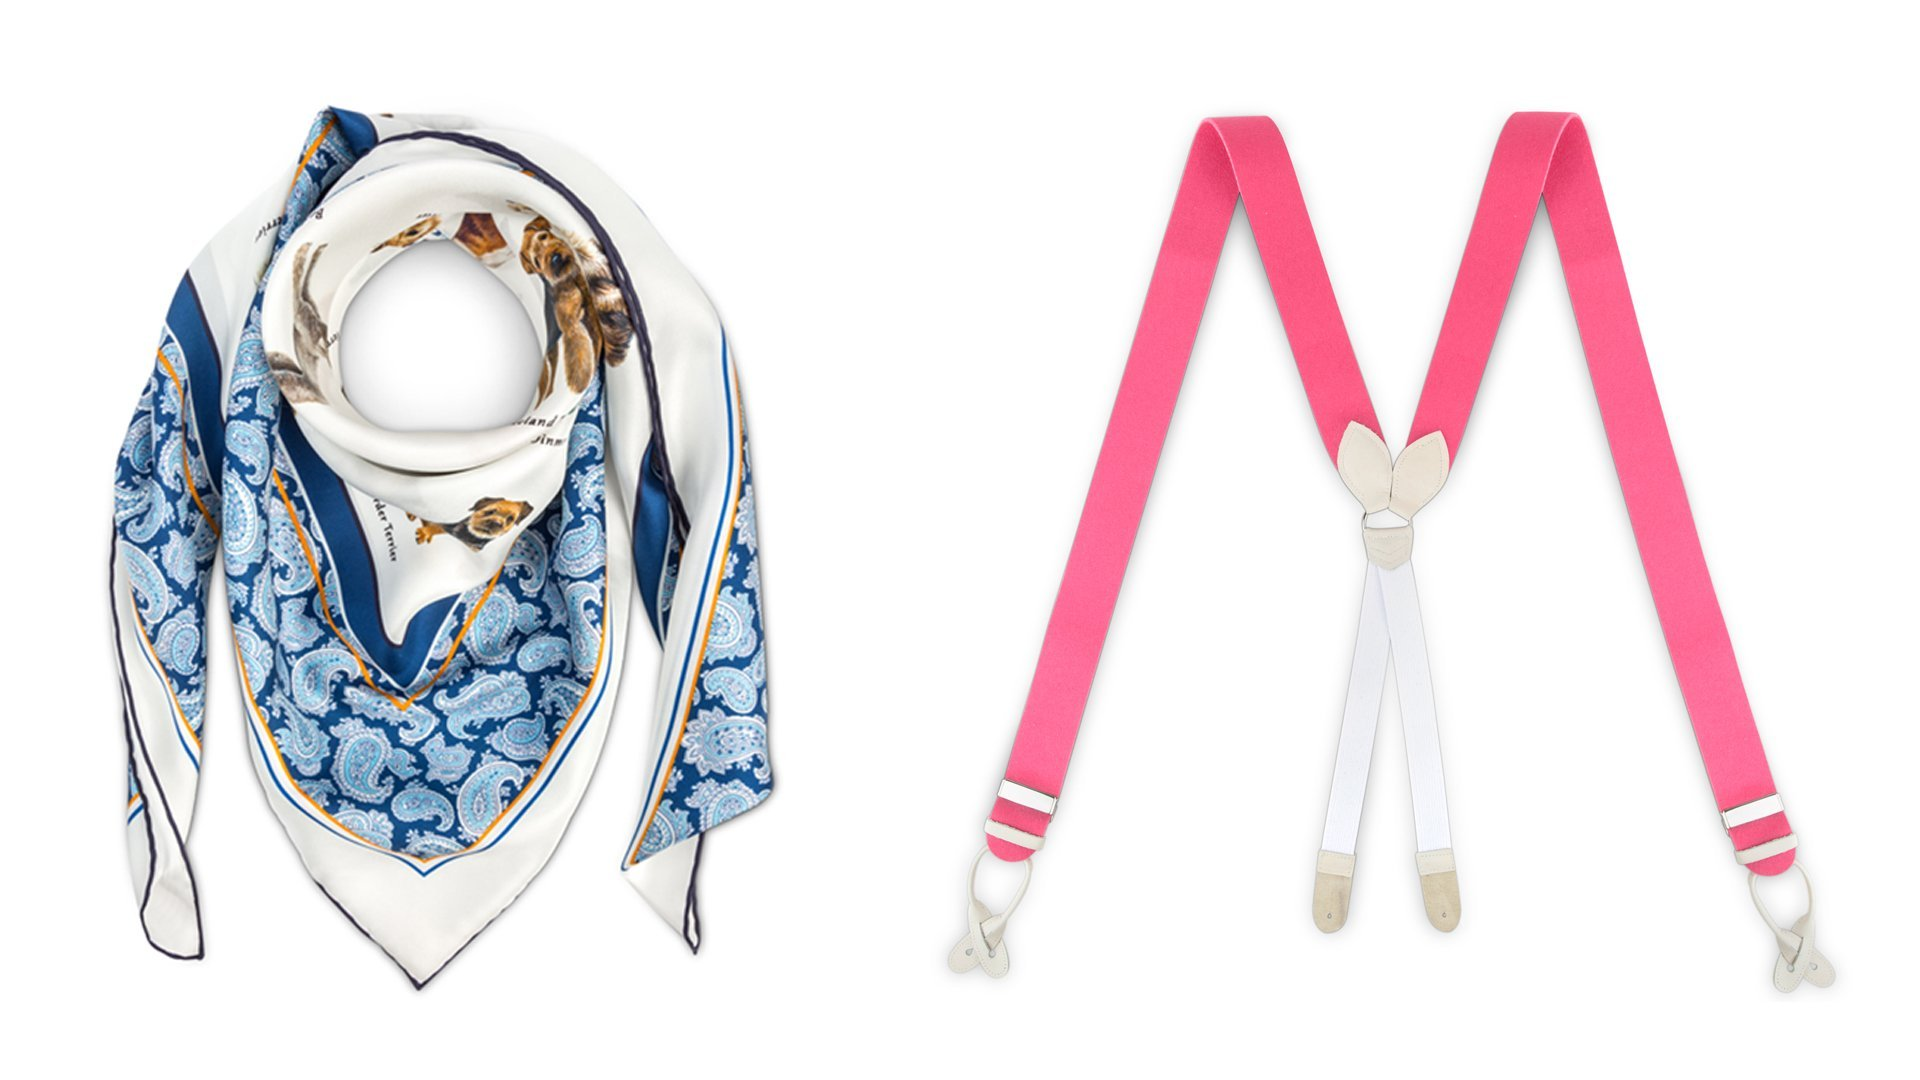 fashion photography and packshots for clothing accessories